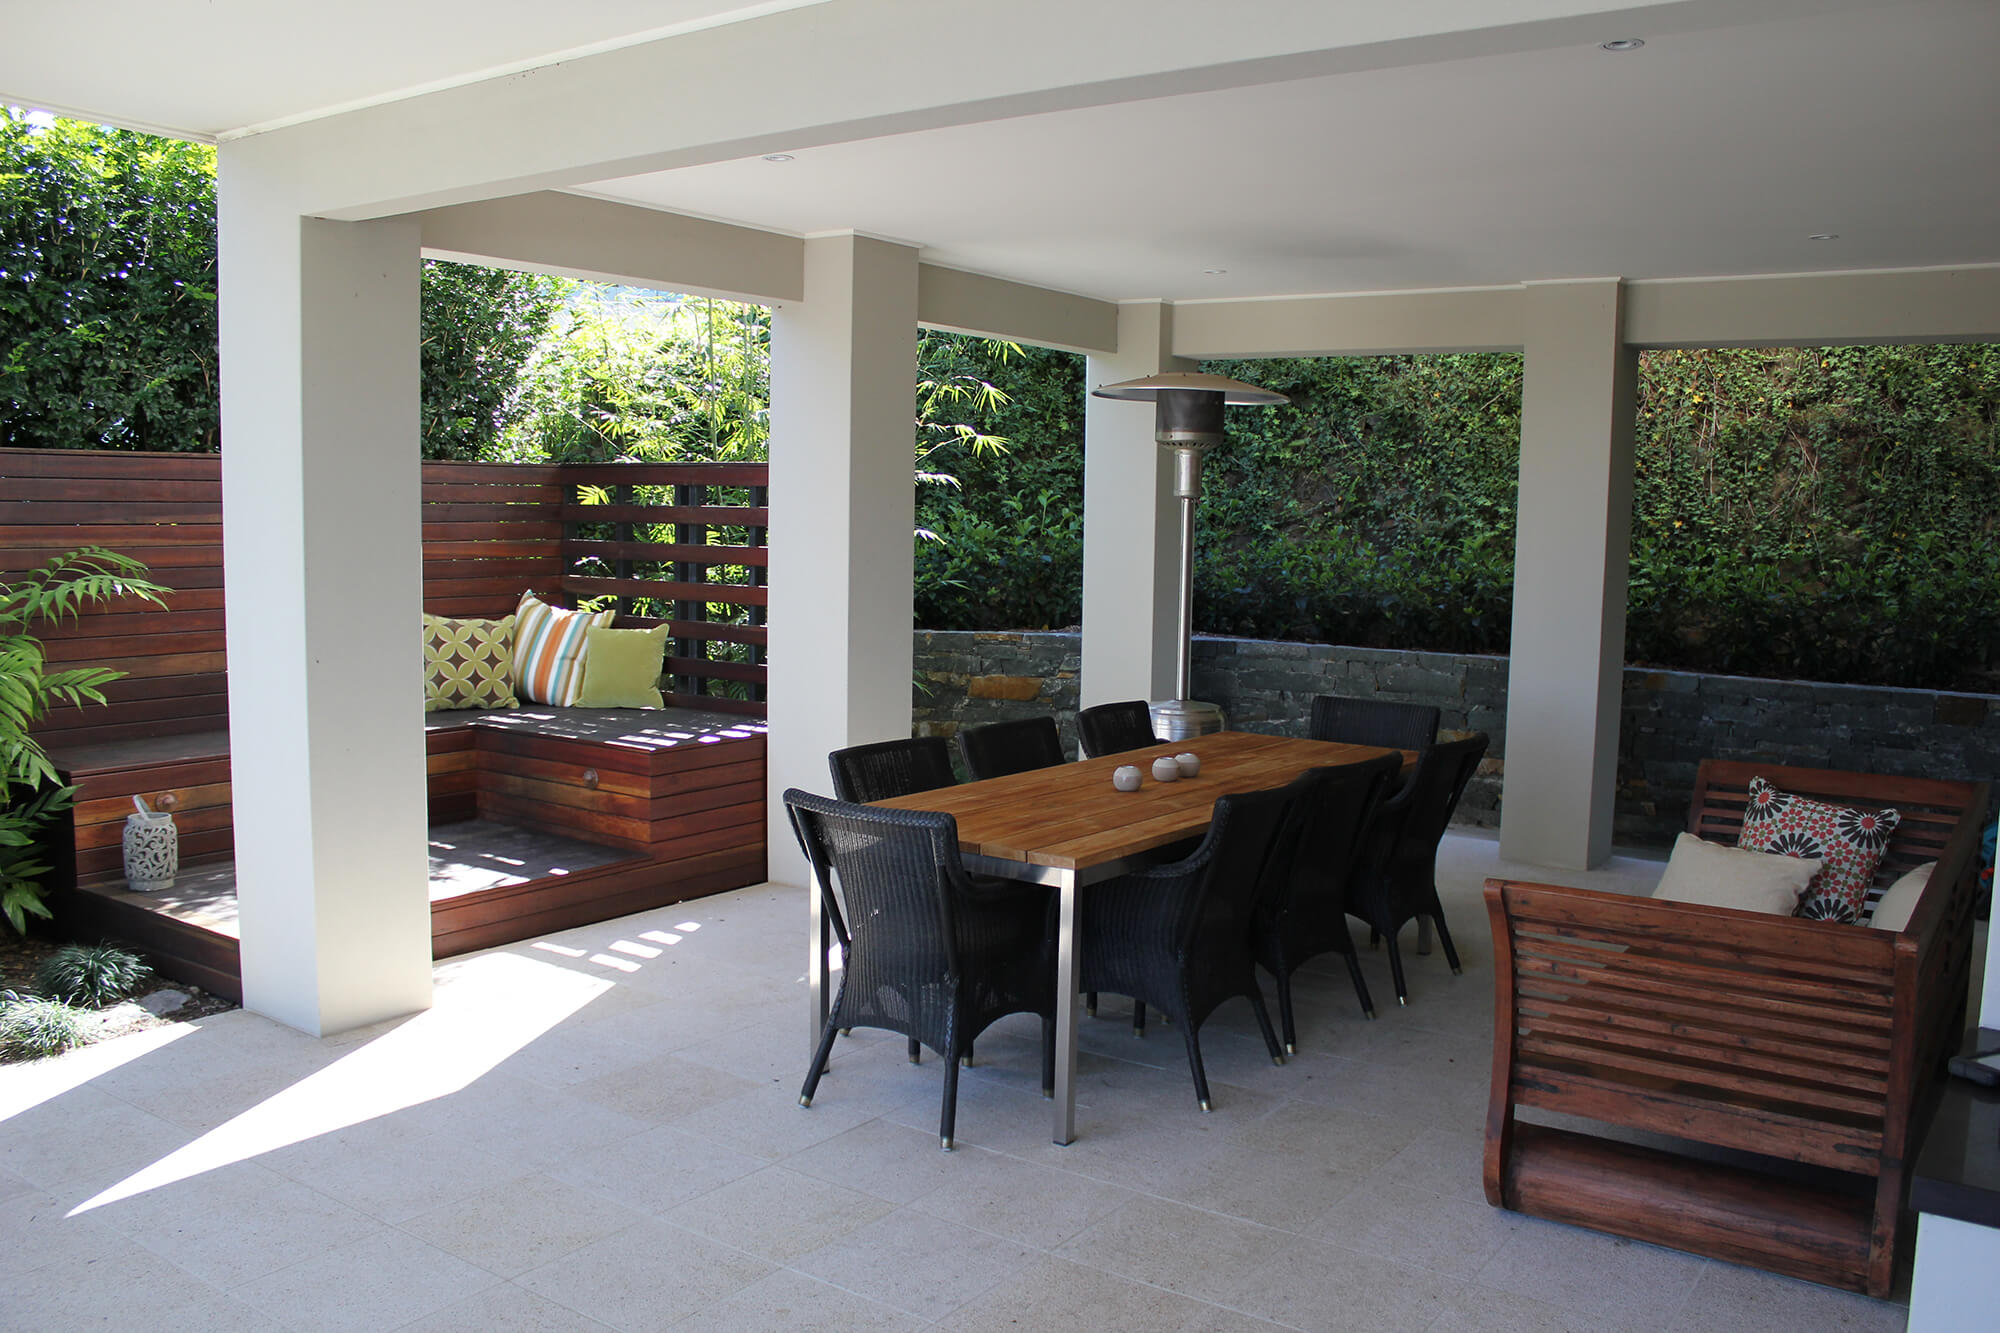 ascot outdoor living area